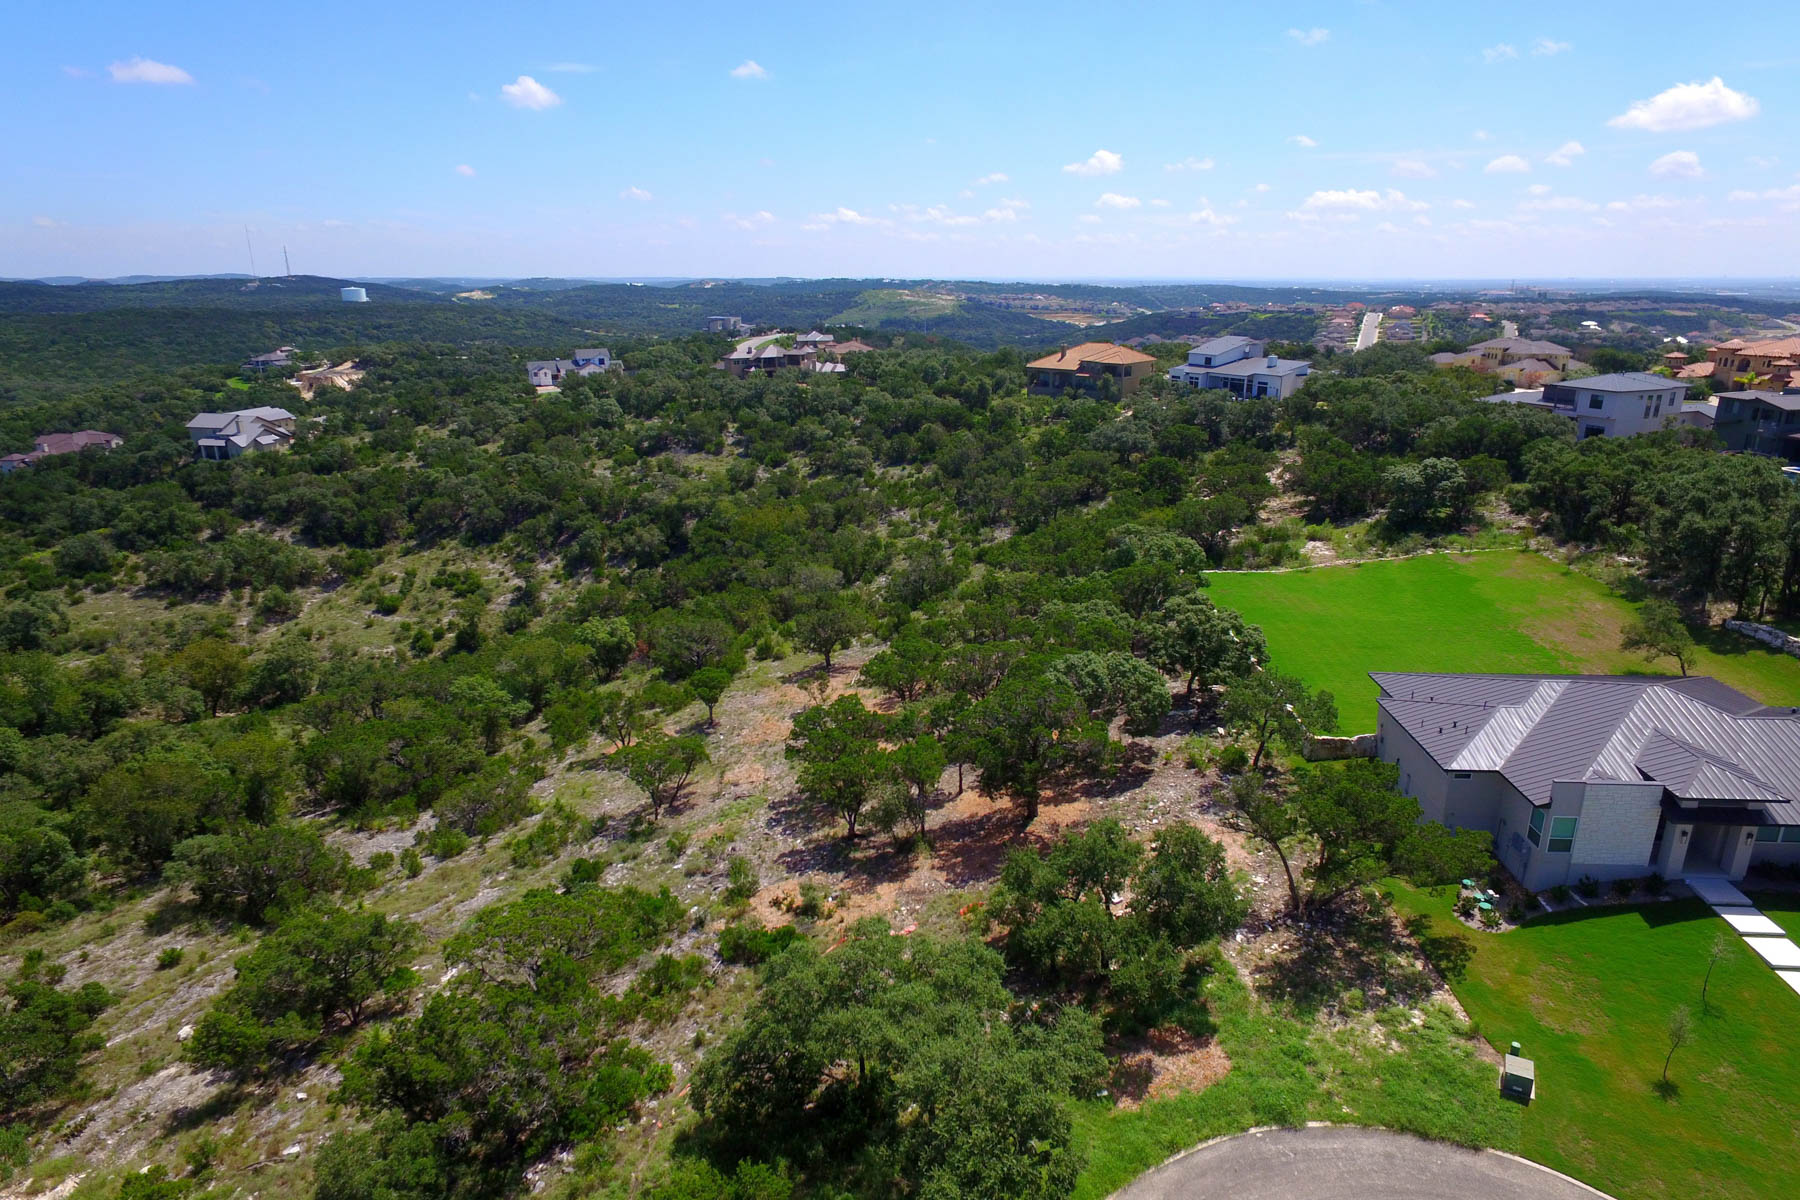 Terreno por un Venta en Exceptional Hill Country Property Within the City 19314 Terra Brook San Antonio, Texas 78255 Estados Unidos